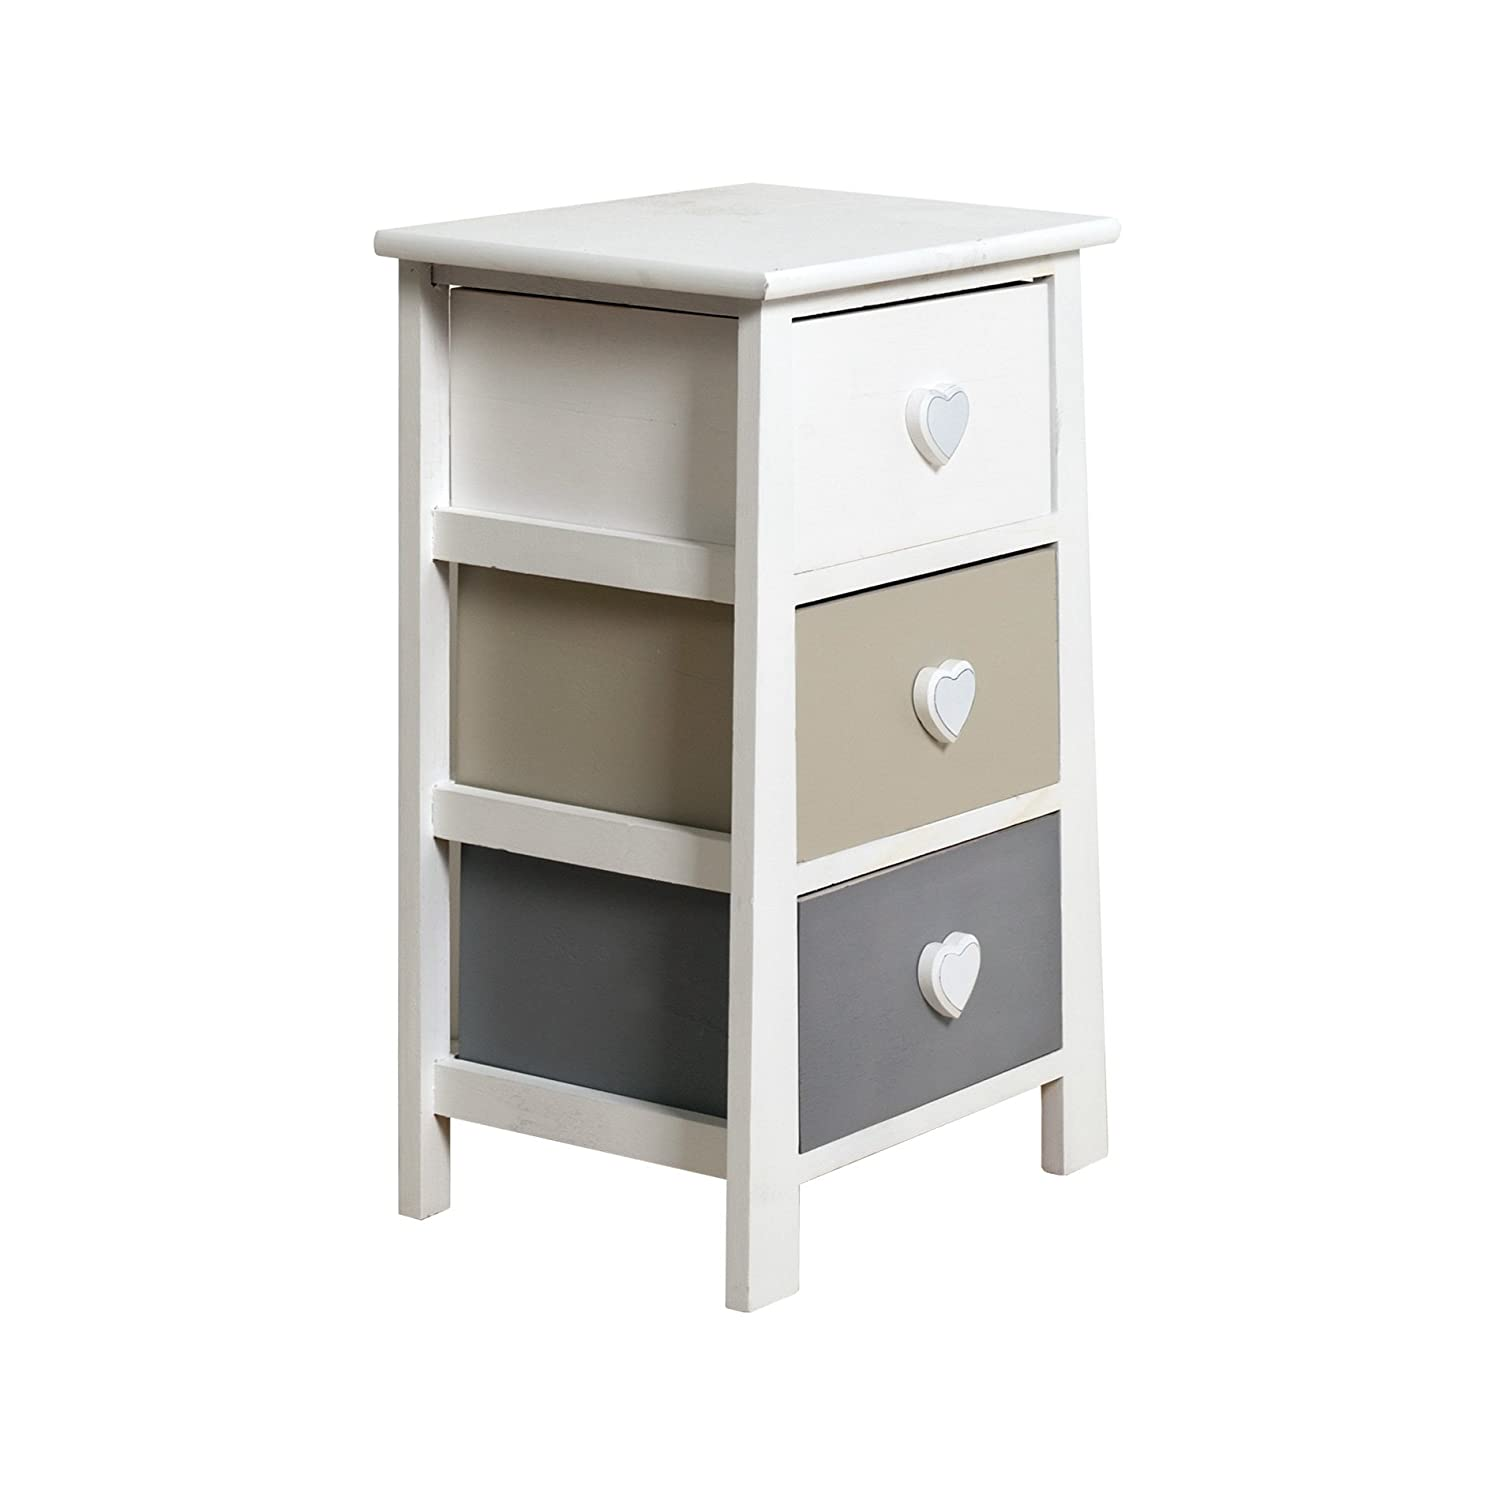 - Art 81 x 26 x 32 cm RE4560 Rebecca Mobili Cabinet Sideboard Chest Of Drawers Grey Wood Natural Shabby Chic Vintage French Bedroom Bathroom H x W x D